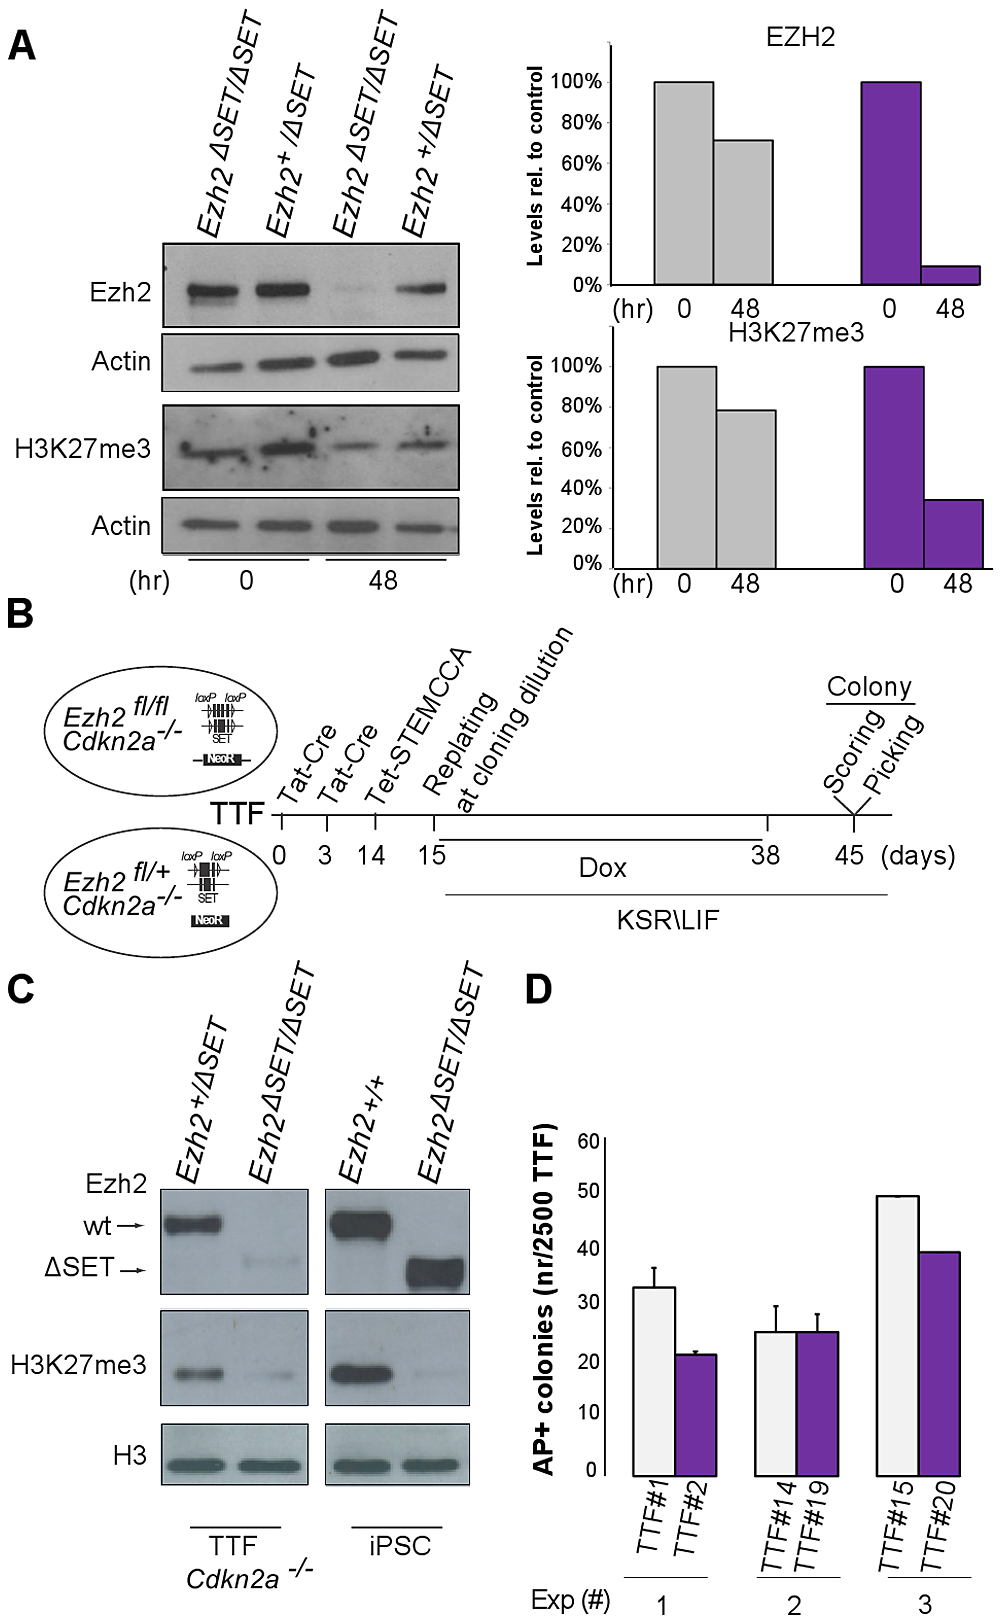 Establishment of iPSC clones upon genome-wide erasure of H3K27me3 at the onset of reprogramming.